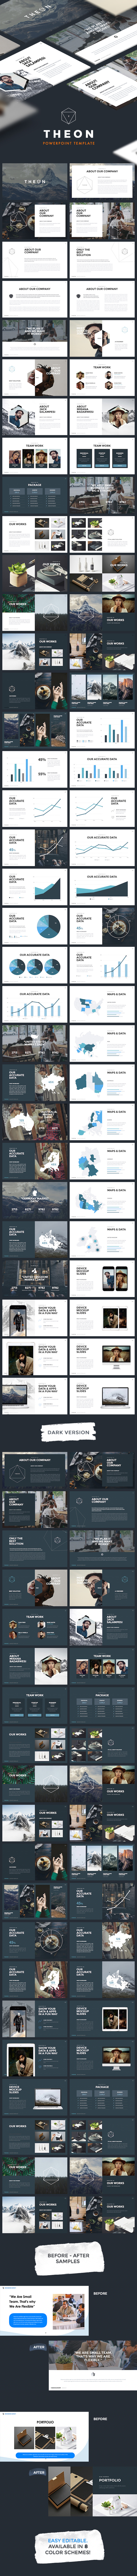 Modern Minimal Powerpoint Template (Theon) - Creative PowerPoint Templates